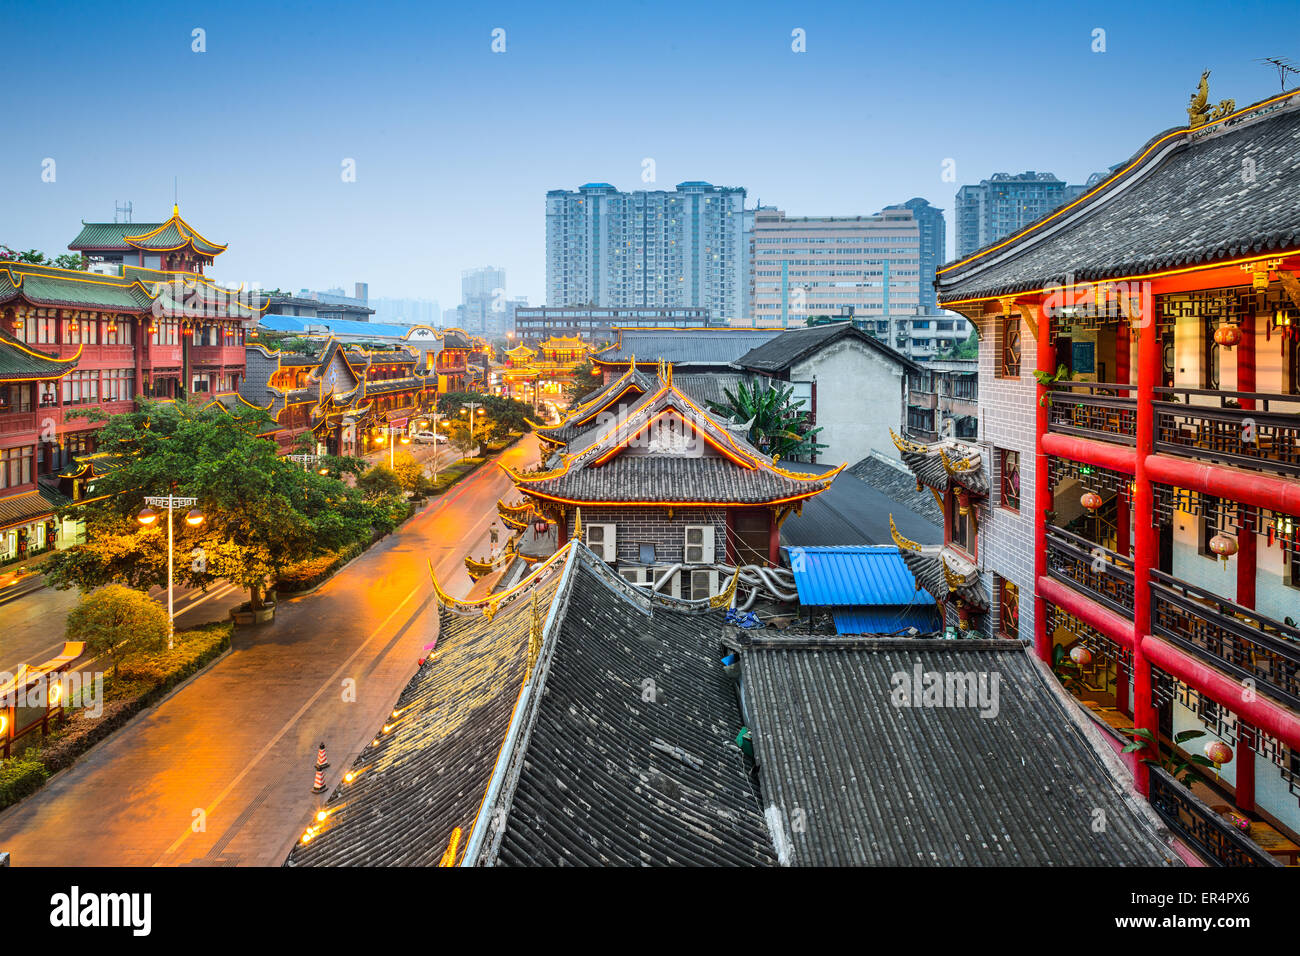 Chengdu, China am traditionellen Qintai Straße Bezirk. Stockbild